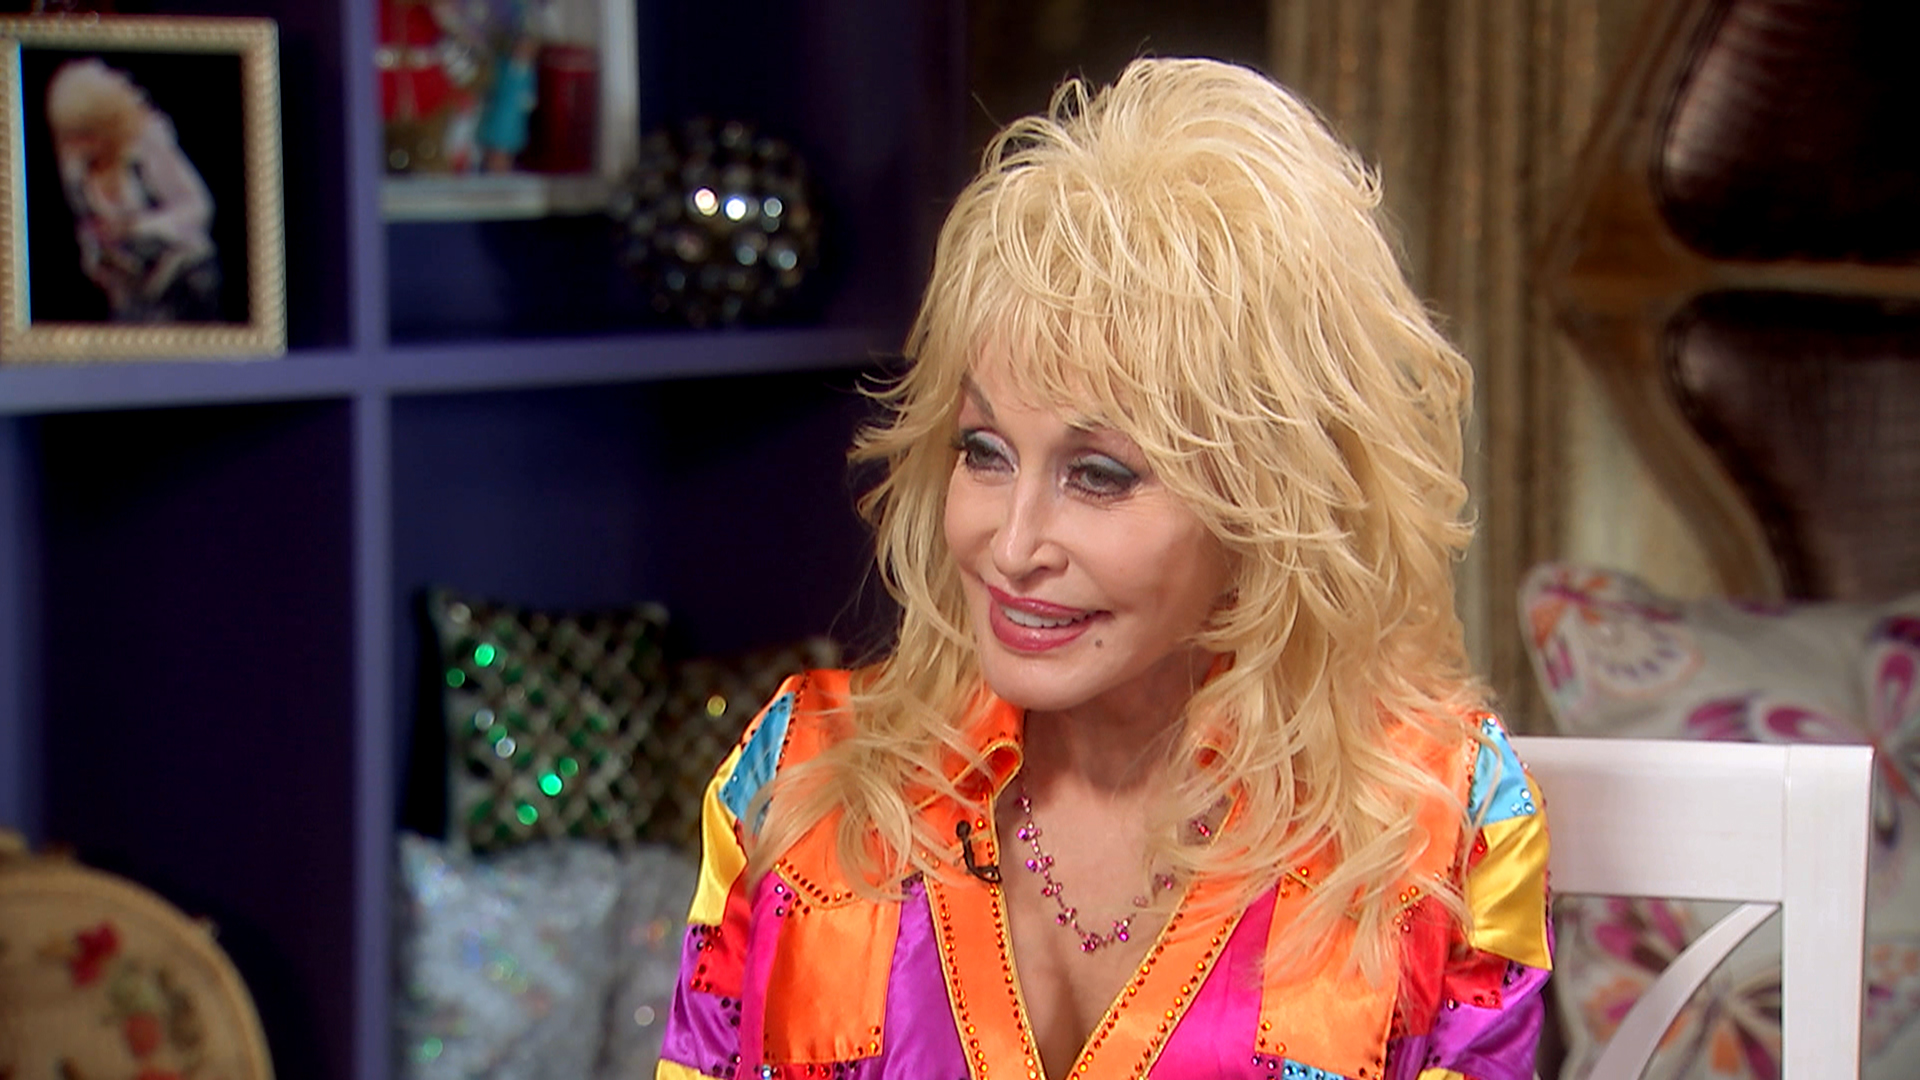 Dolly Parton On Her Childhood We Were Rich In Things